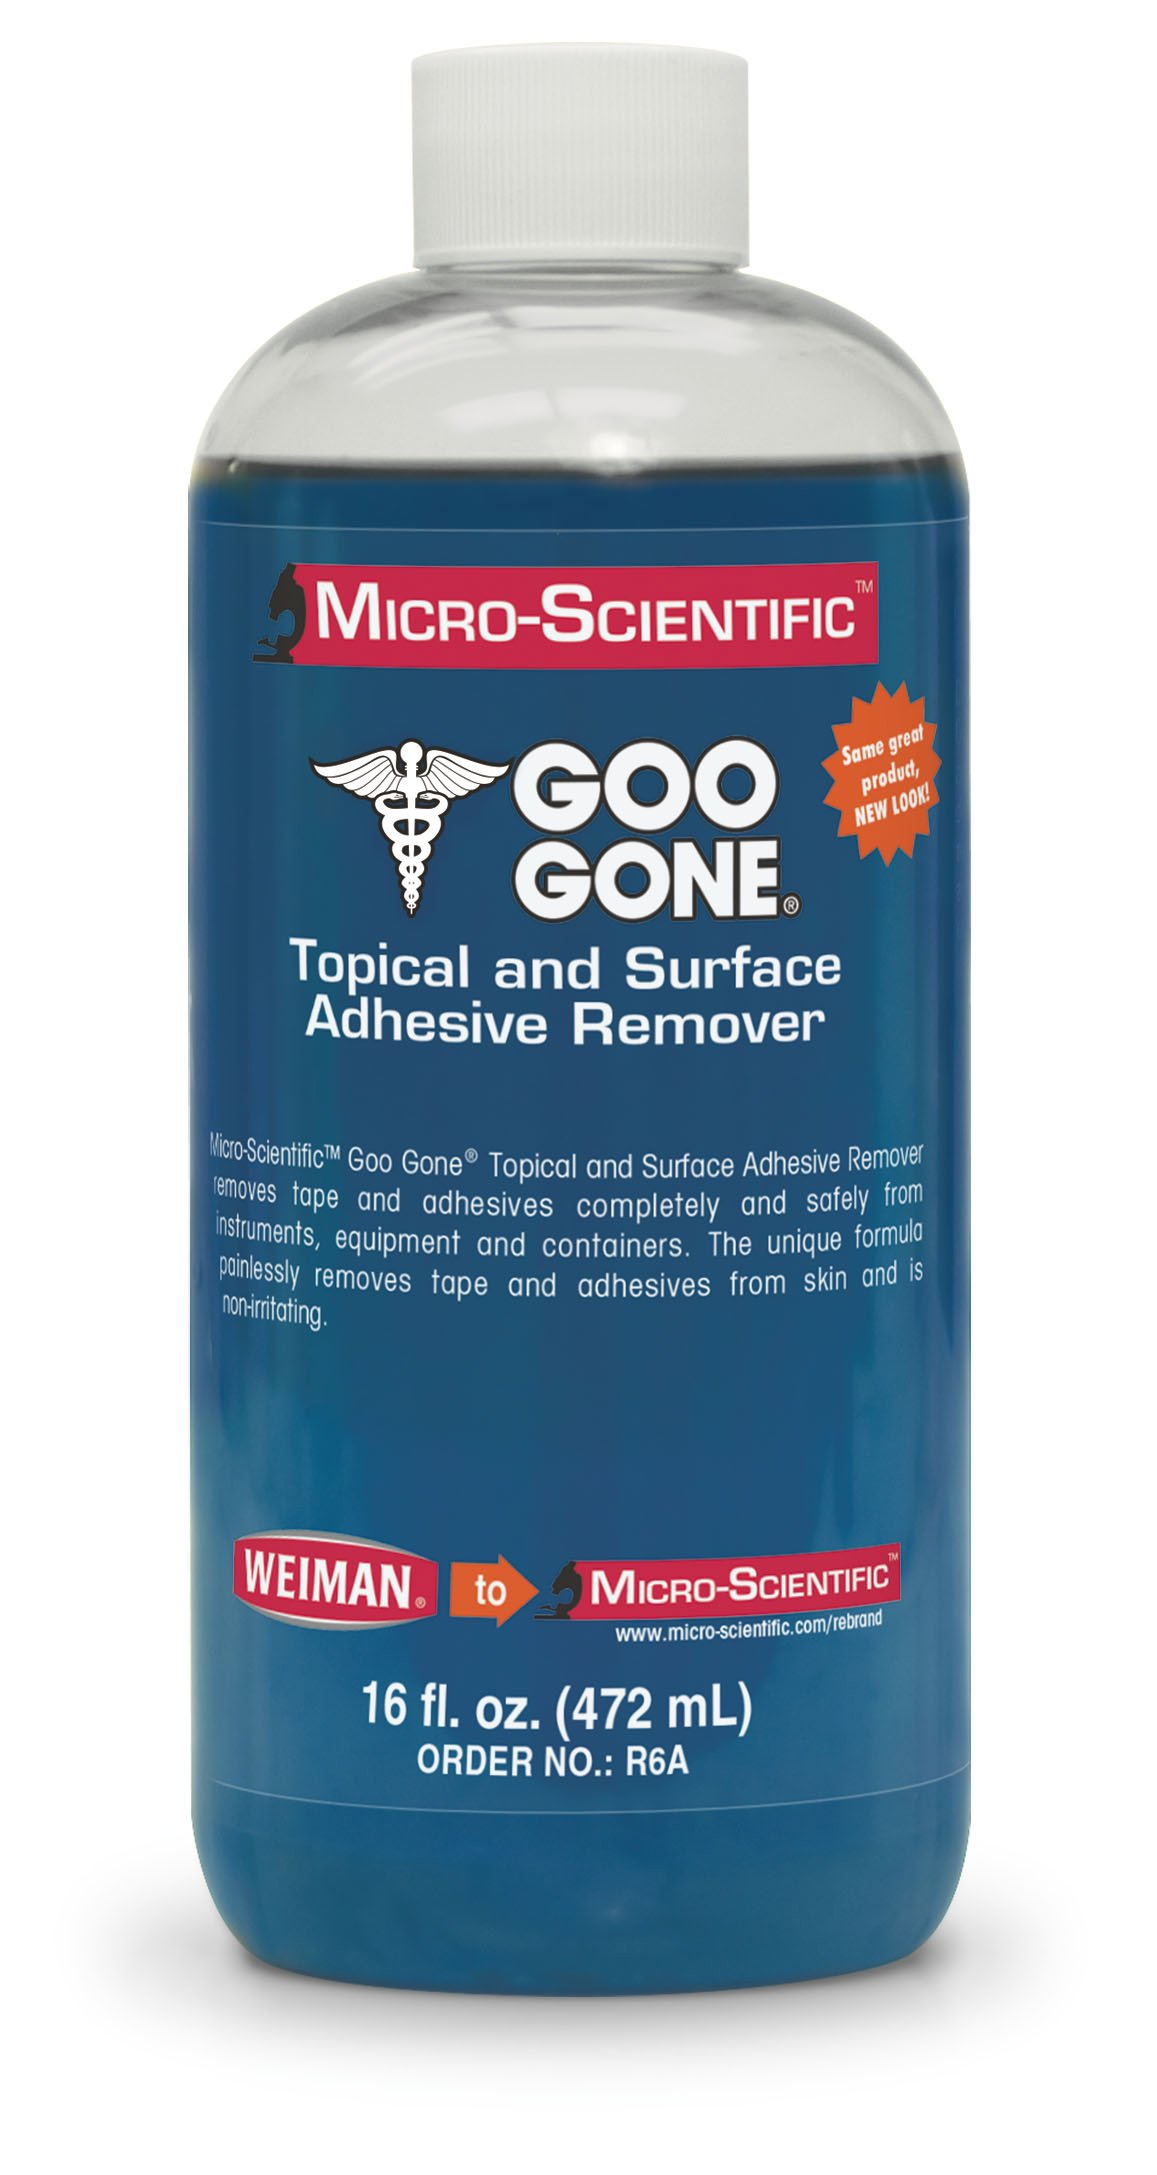 Micro-Scientific Goo Gone Topical Adhesive Remover for Skin - Bandage & Surface Adhesive Remover for Healthcare/Medical Application by Micro-Scientific